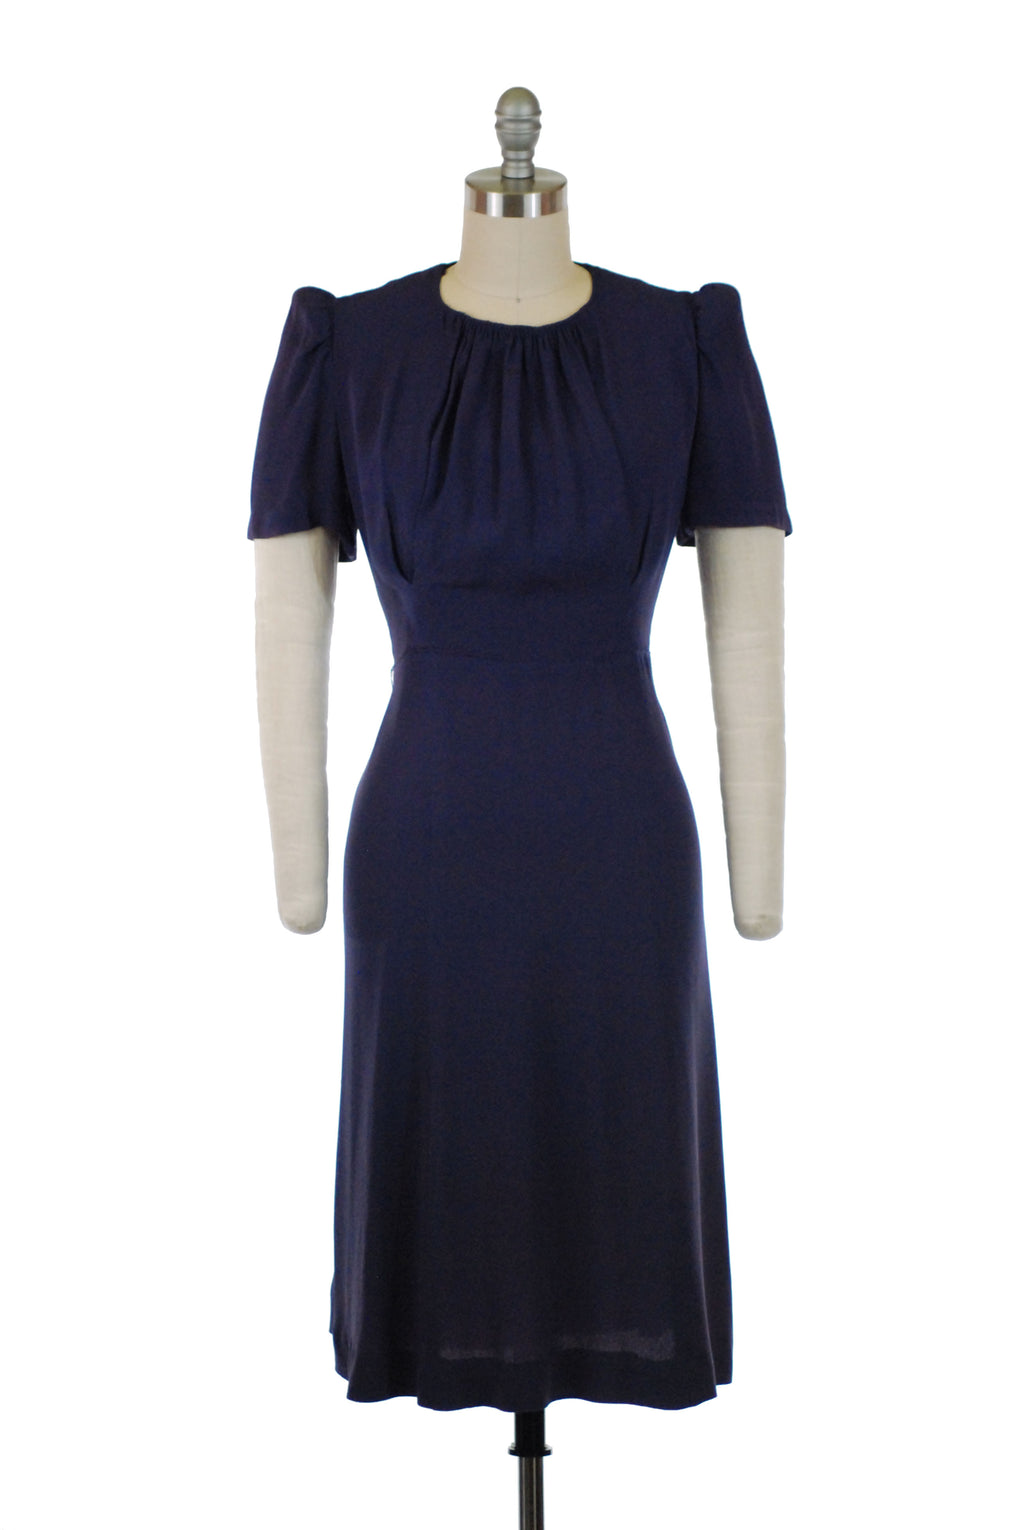 Chic Late 1930s Peaked Sleeve Dress in Purply-Navy Blue with Draping